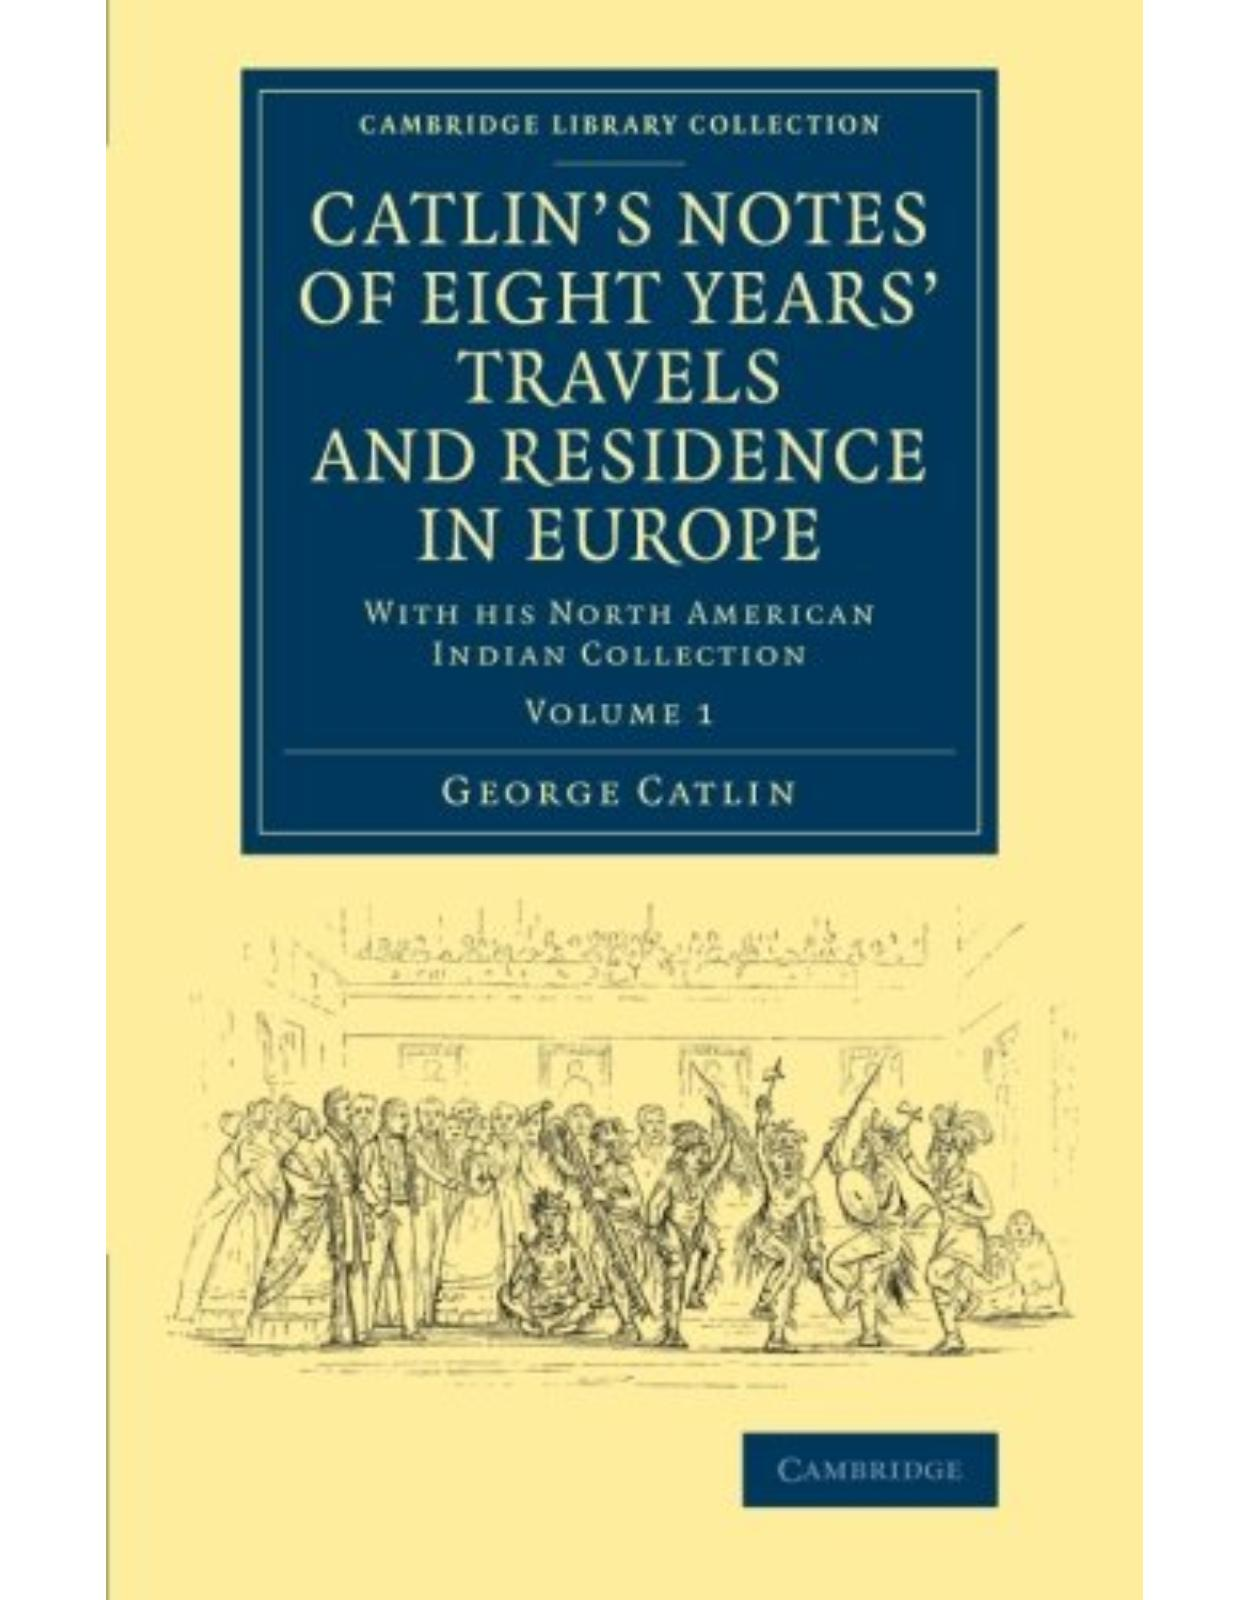 CatlinÂ's Notes of Eight YearsÂ' Travels and Residence in Europe: Volume 1: With his North American Indian Collection (Cambridge Library Collection - North American History)